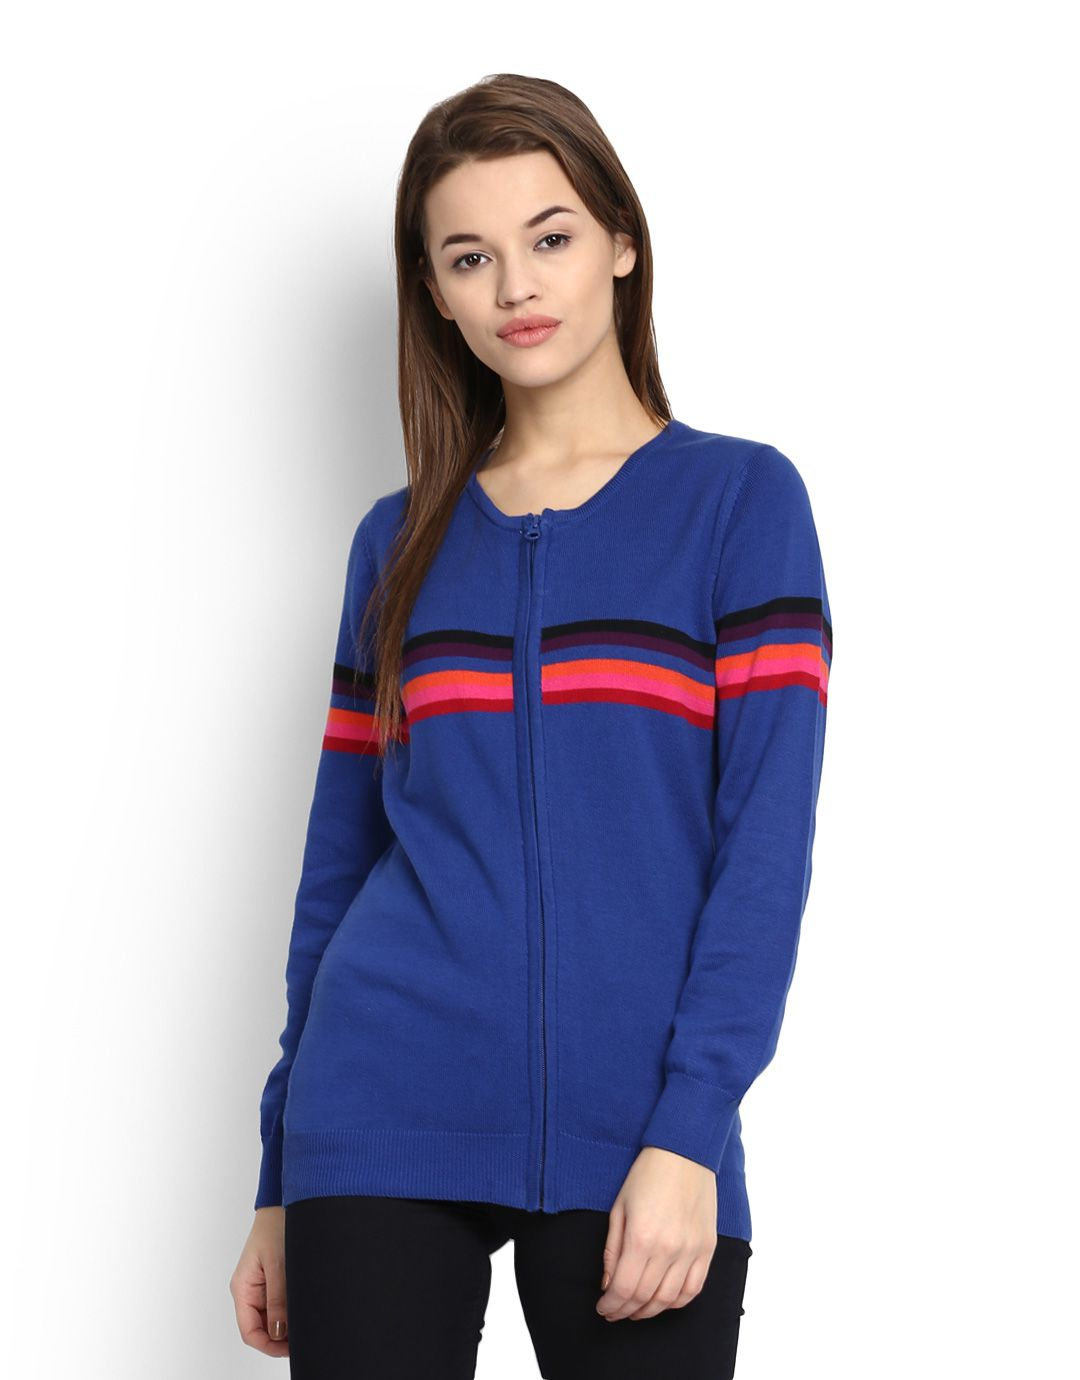 5fa0d4fc7 Buy Wrangler Blue Sweatshirts Online at Best Prices in India - Snapdeal